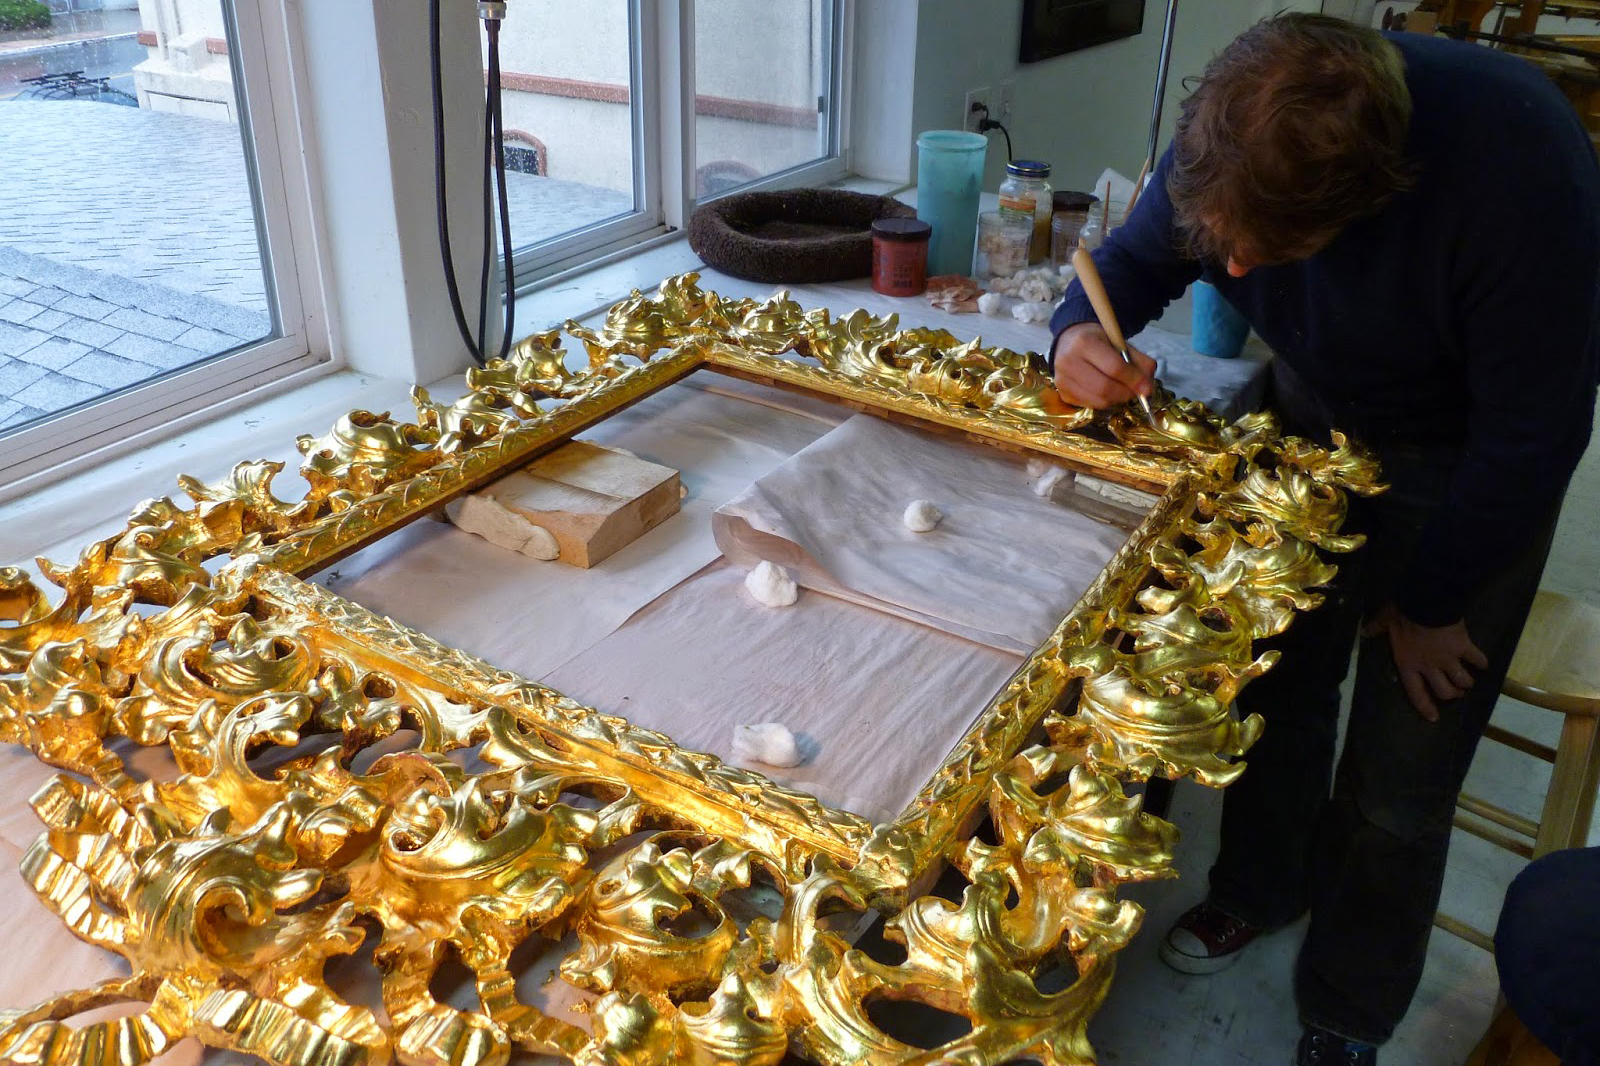 Gilding burnishing